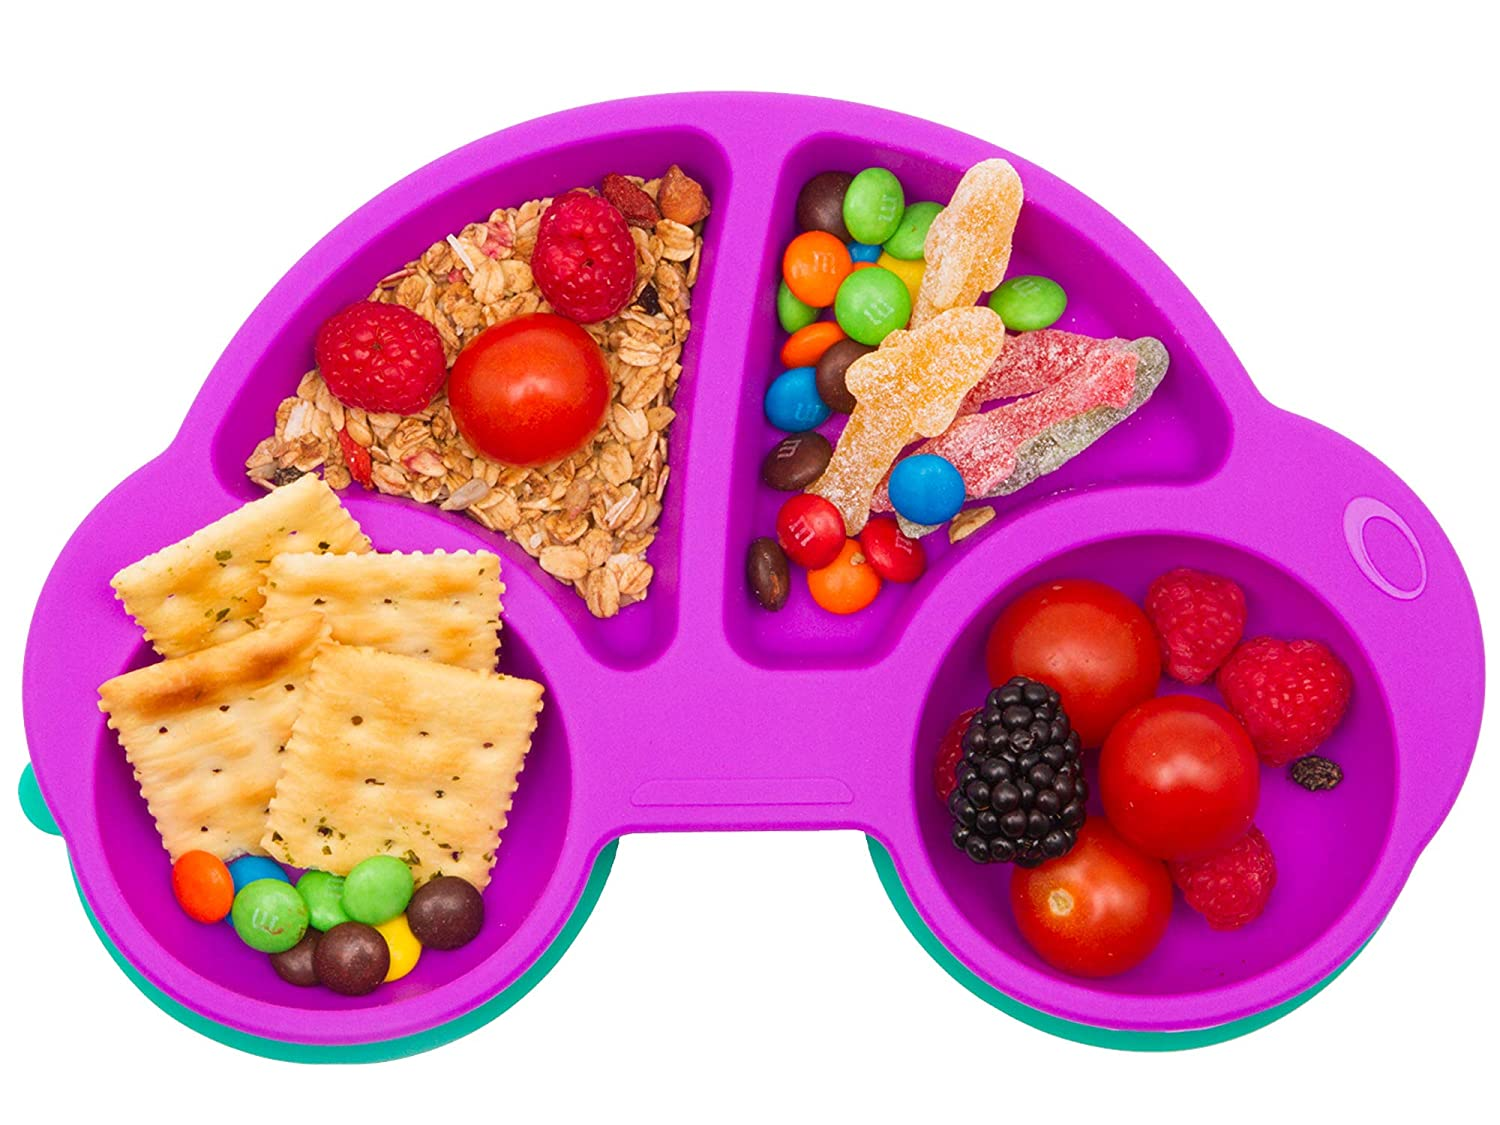 Qshare Toddler Plates, Portable Baby Plates for Toddlers, BPA-Free Strong Suction Plates for Toddlers, Dishwasher and Microwave Safe Silicone Placemat 10x7x1''